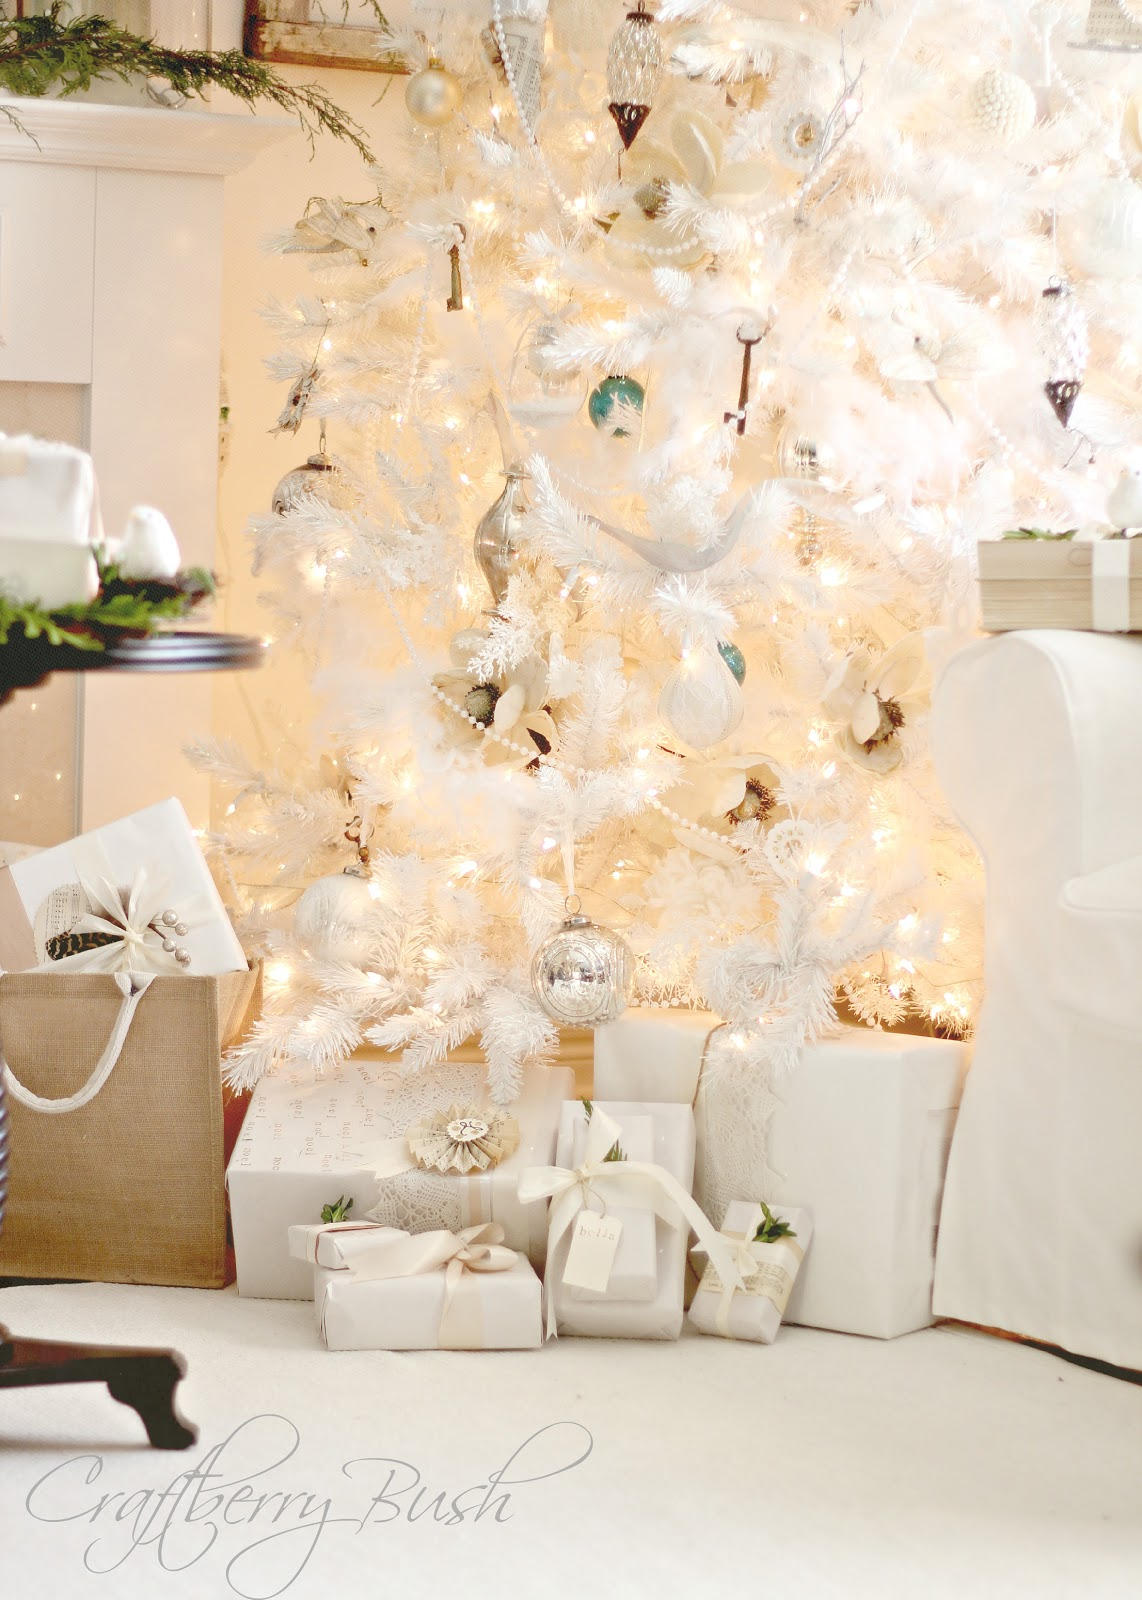 White Christmas Trees Wallpapers High Quality Download Free